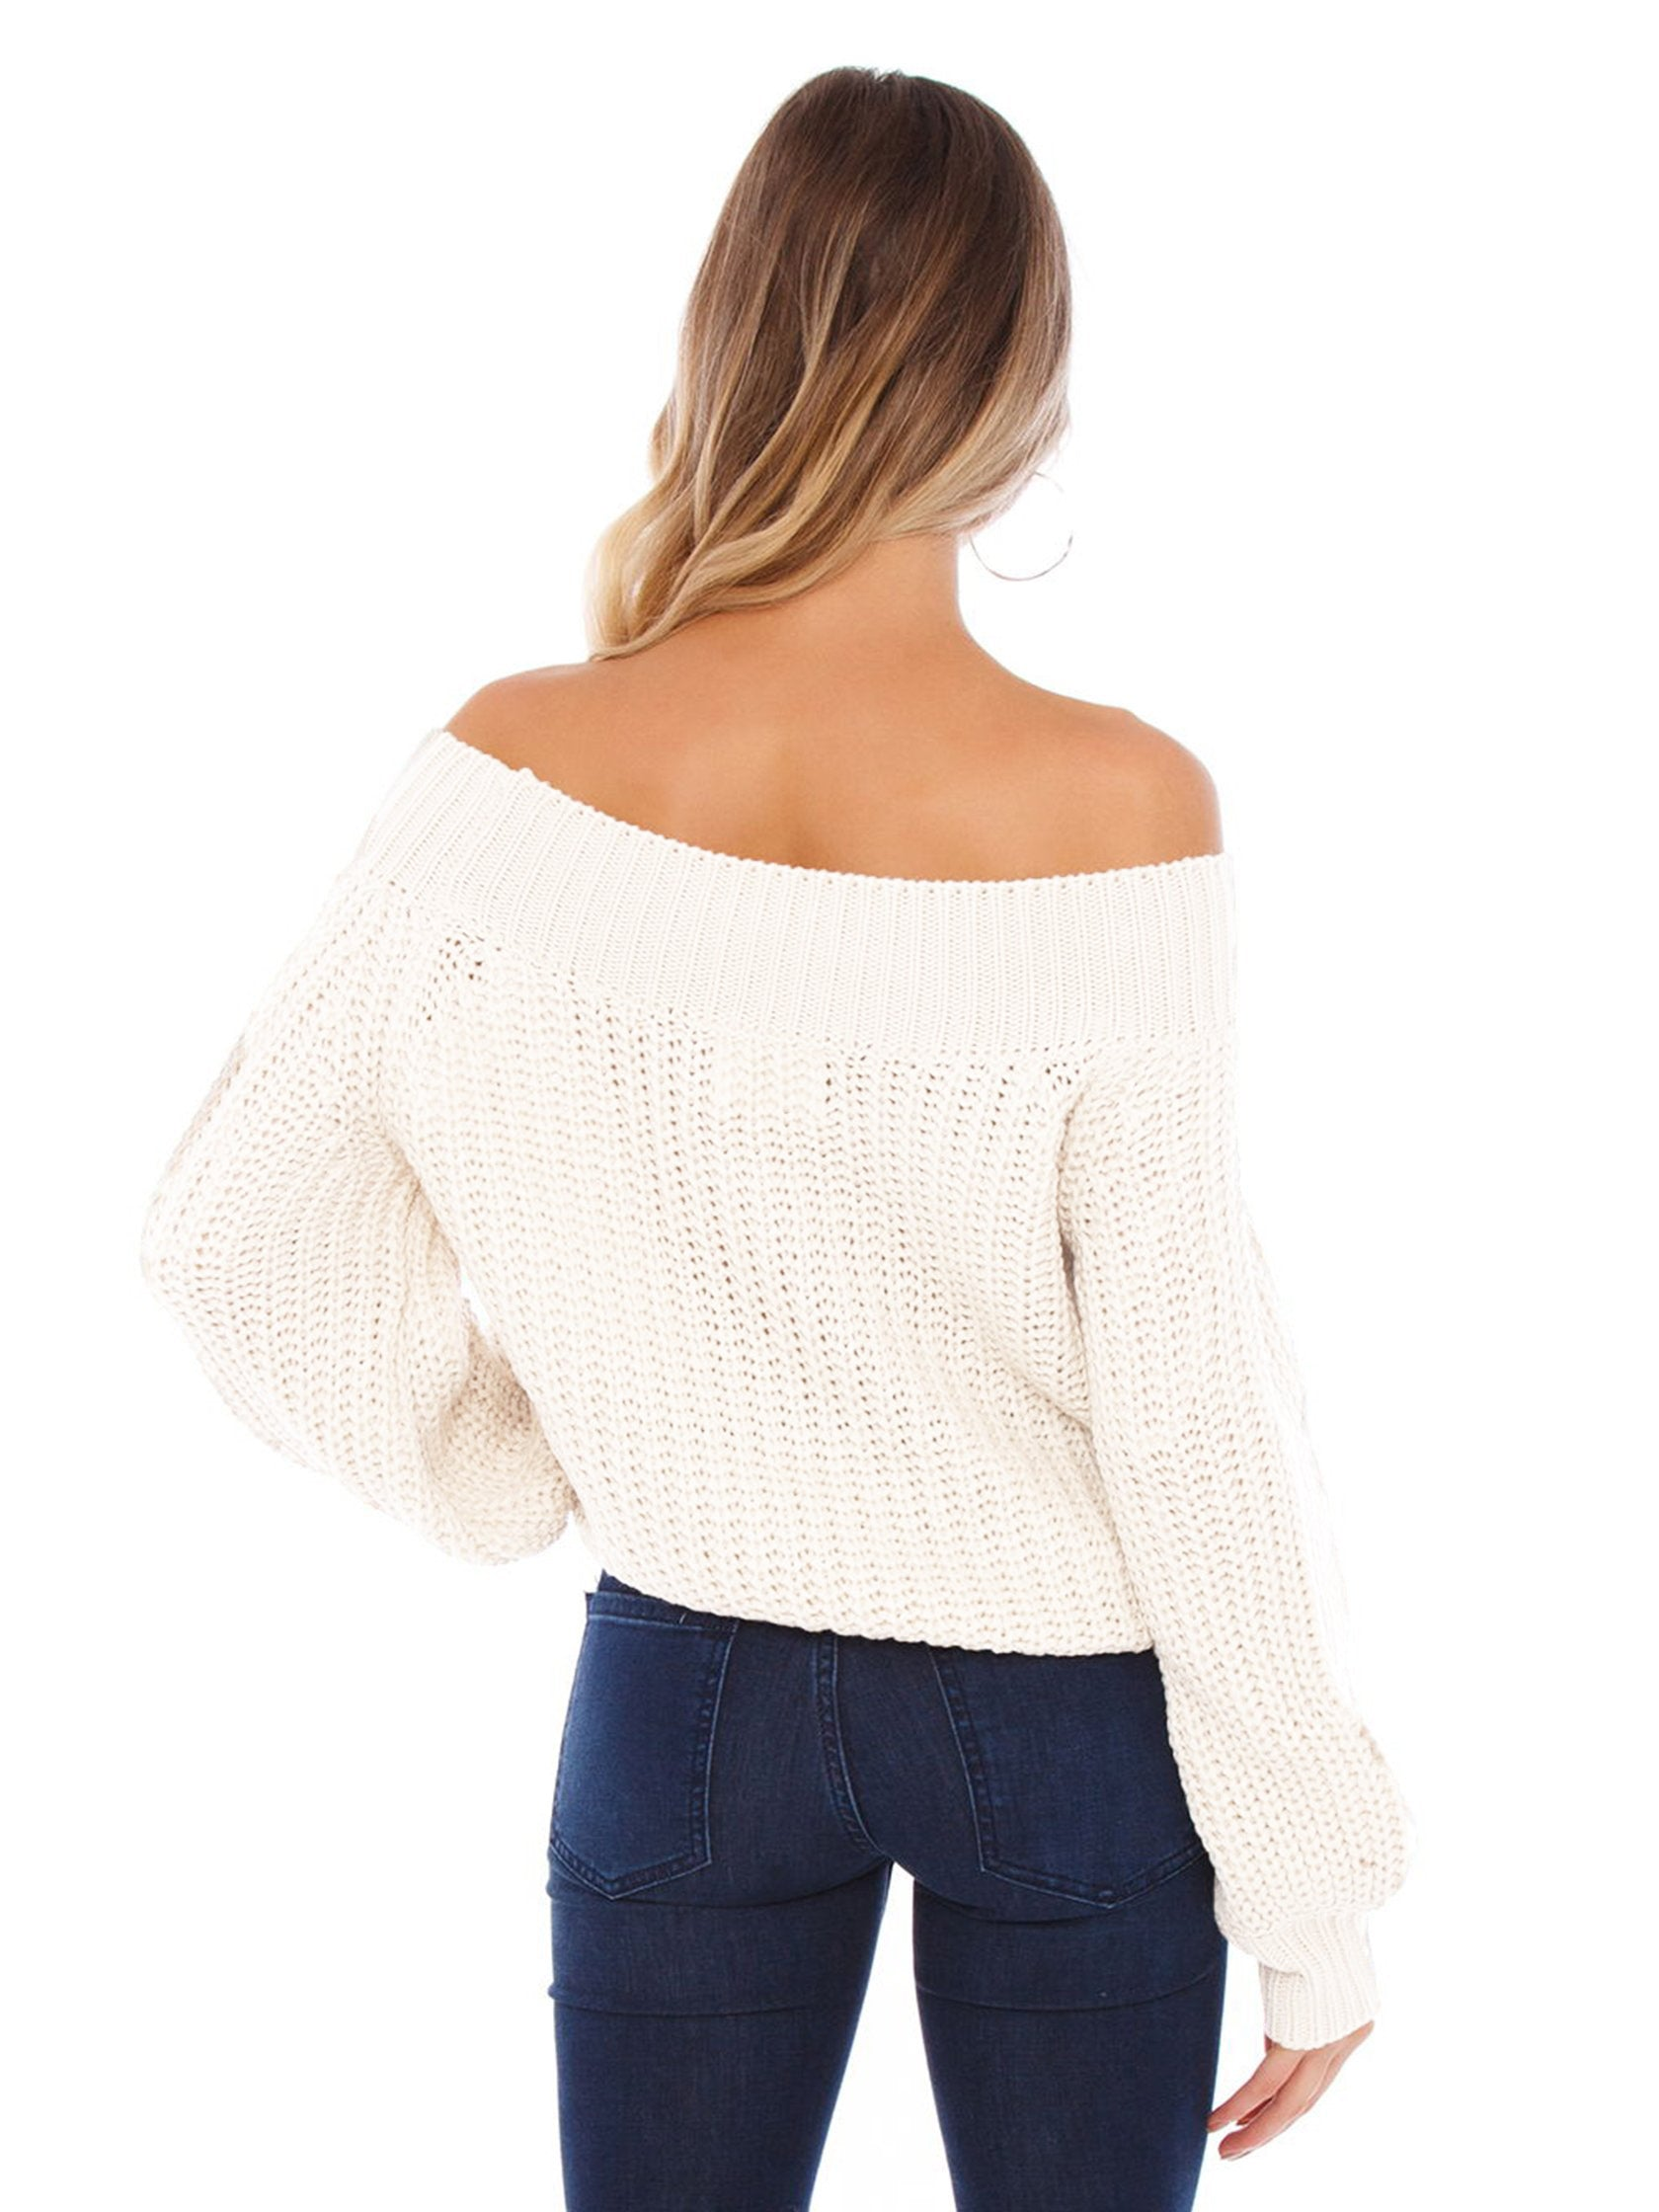 Women wearing a sweater rental from FASHIONPASS called Chrissy Off Shoulder Sweater